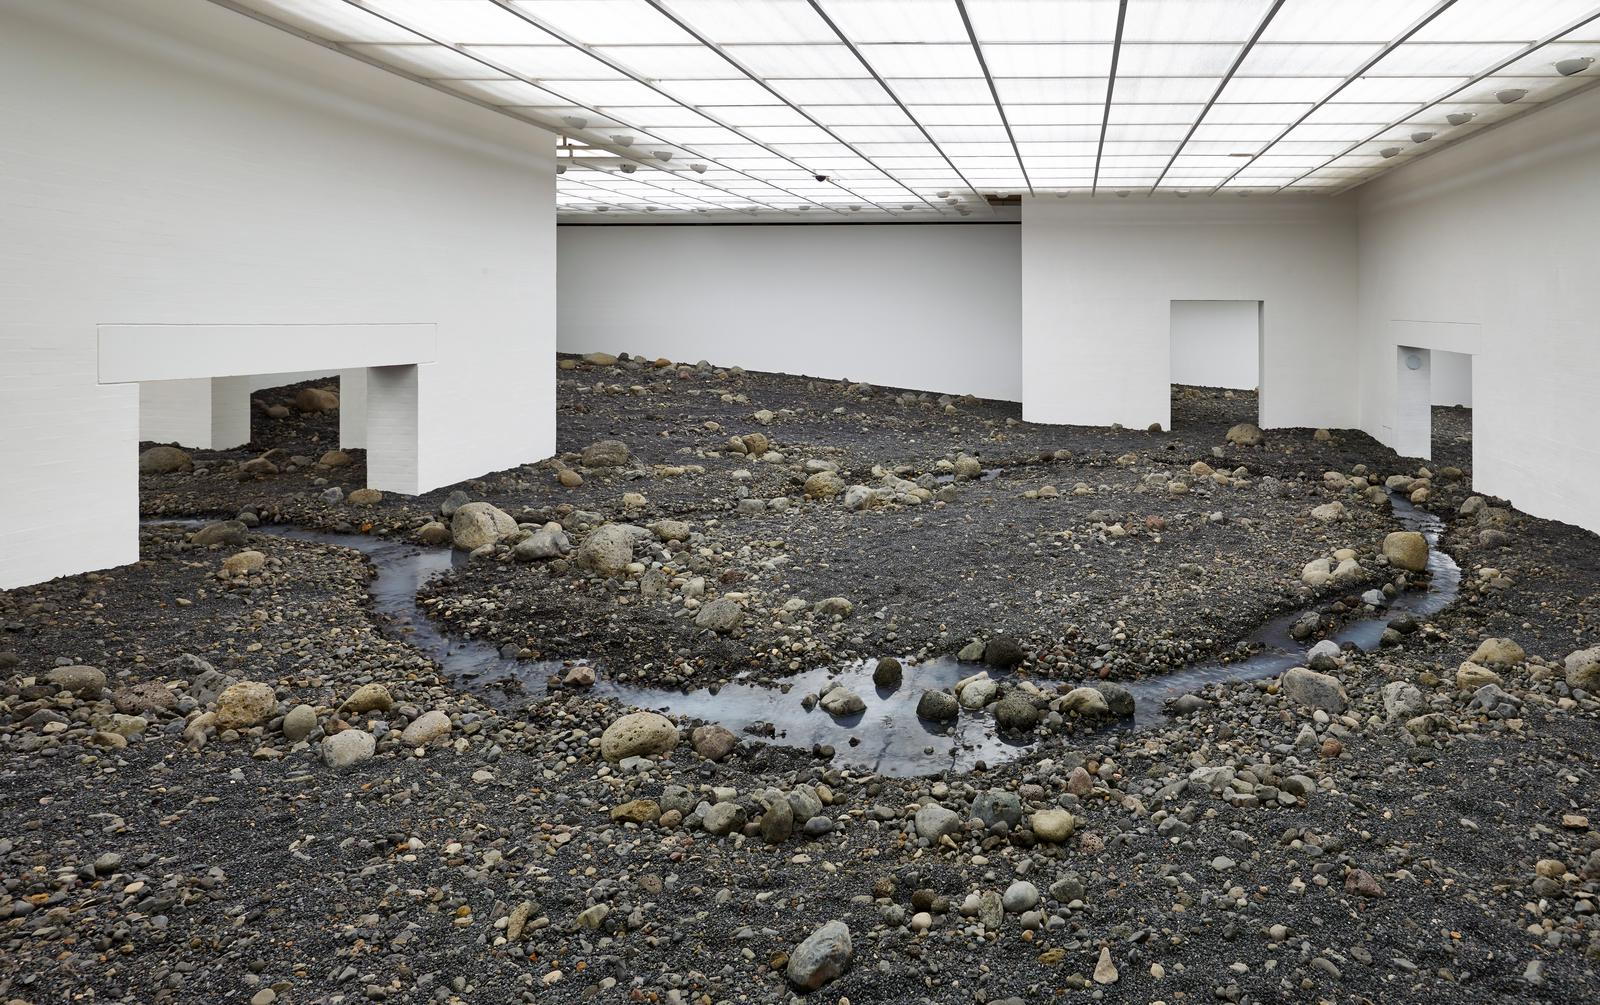 Riverbed • Exhibition • Studio Olafur Eliasson